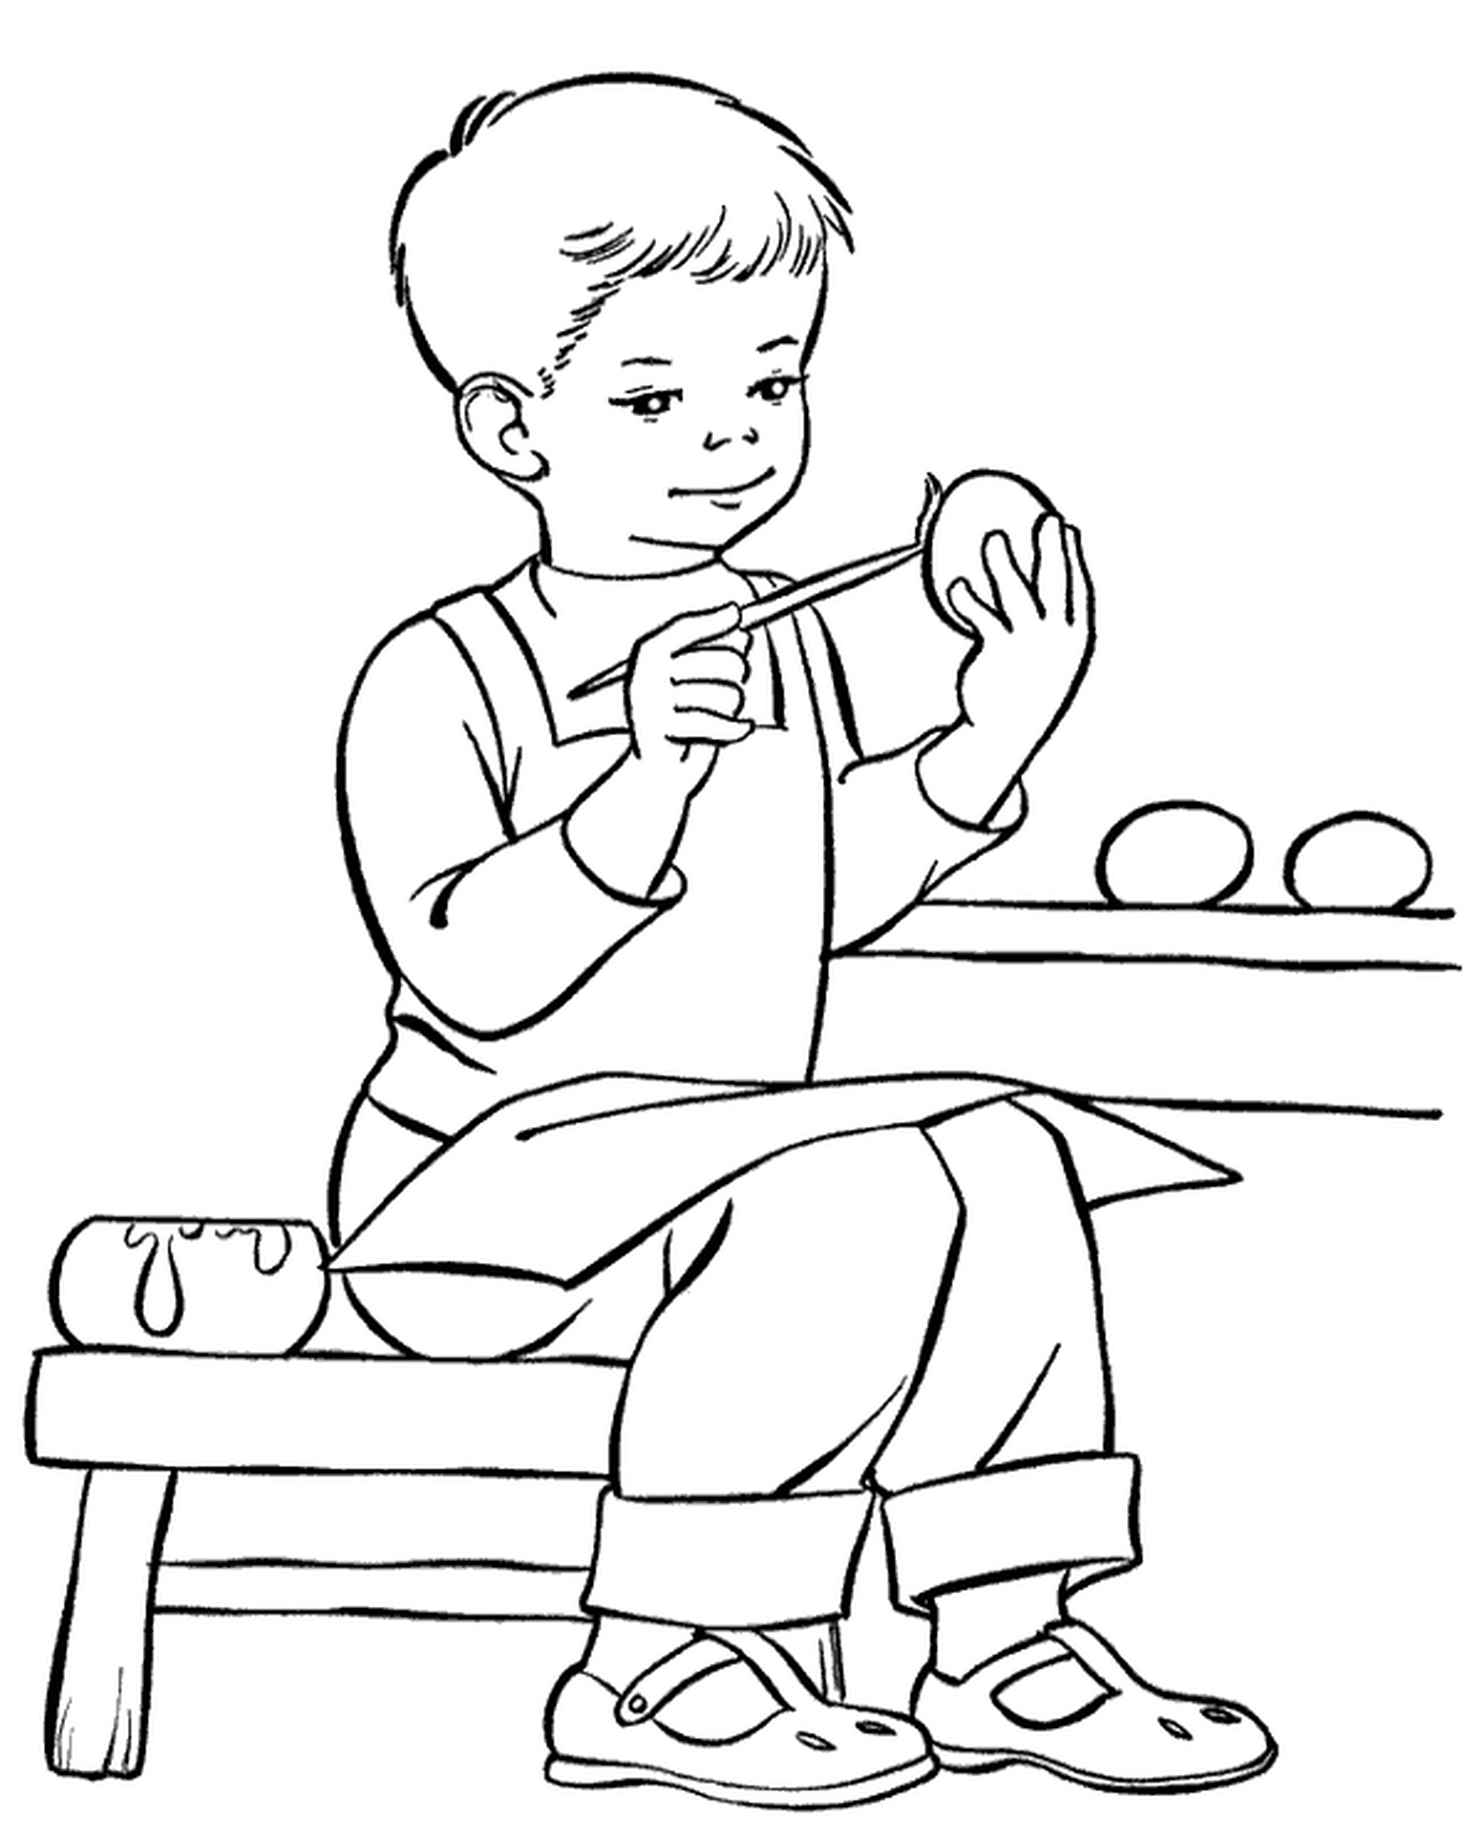 Kid Decorating Eggs For Easter Coloring Page